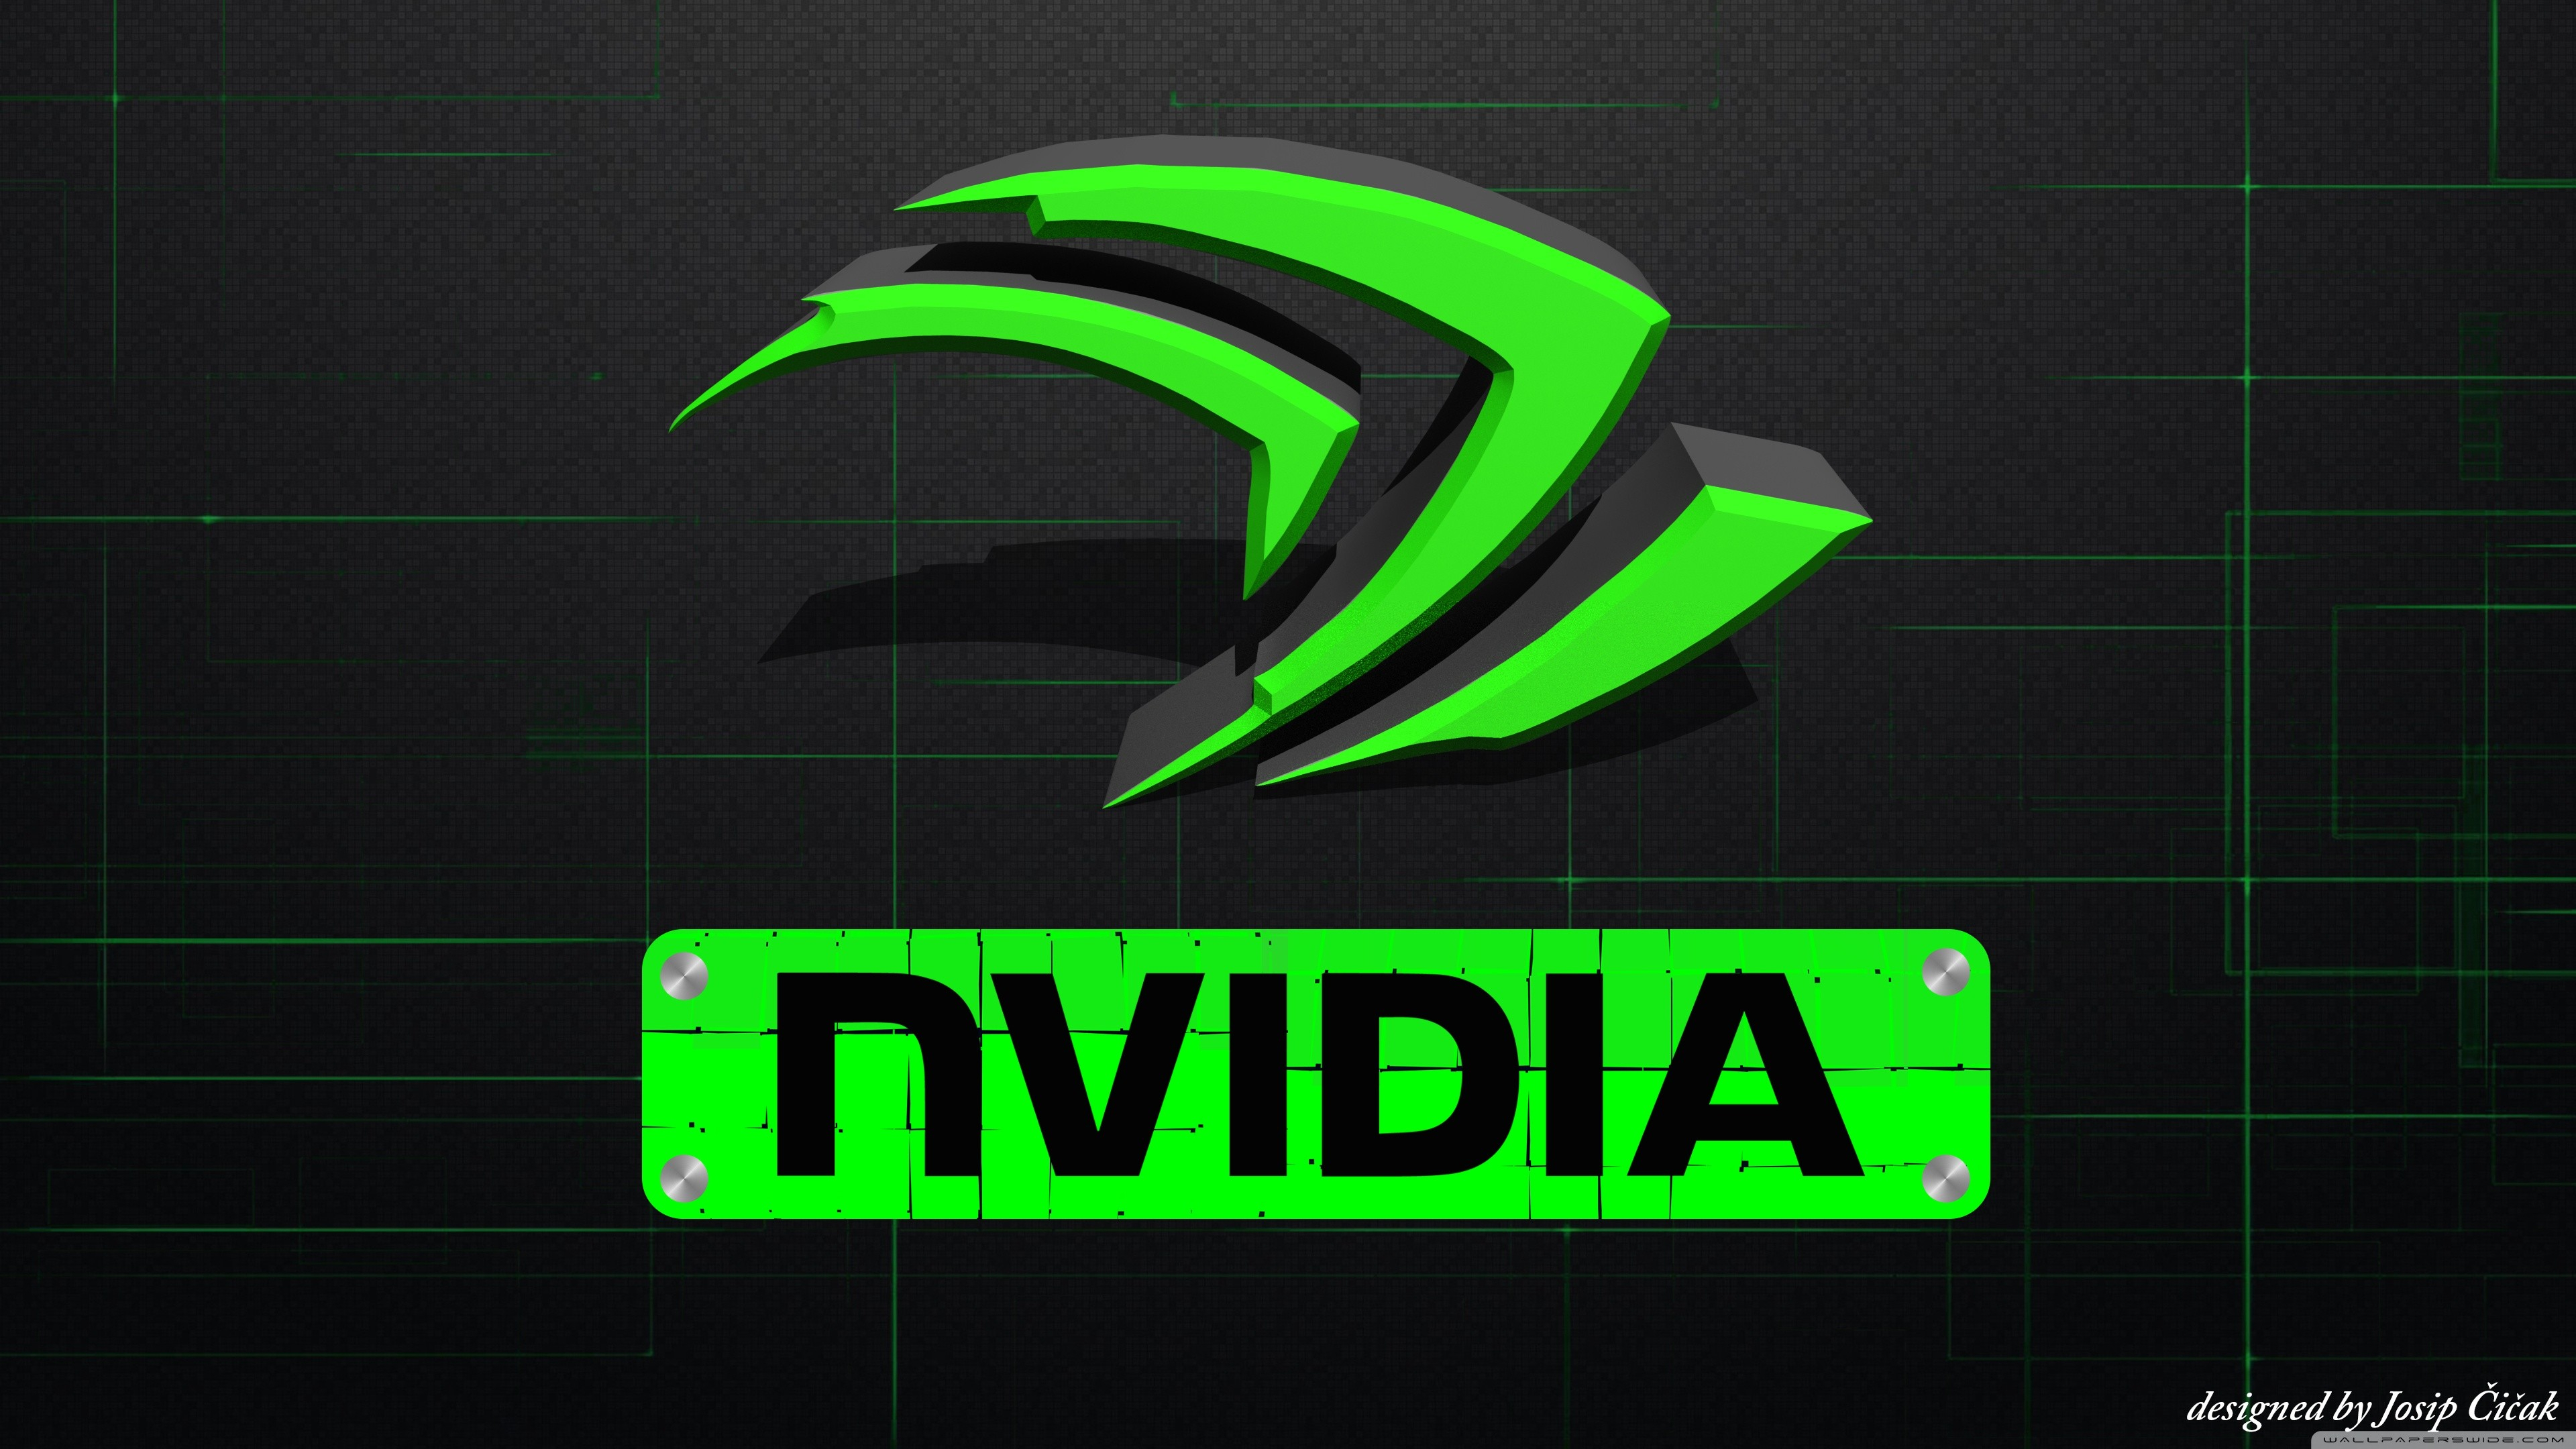 68+ 4k nvidia wallpapers on wallpaperplay